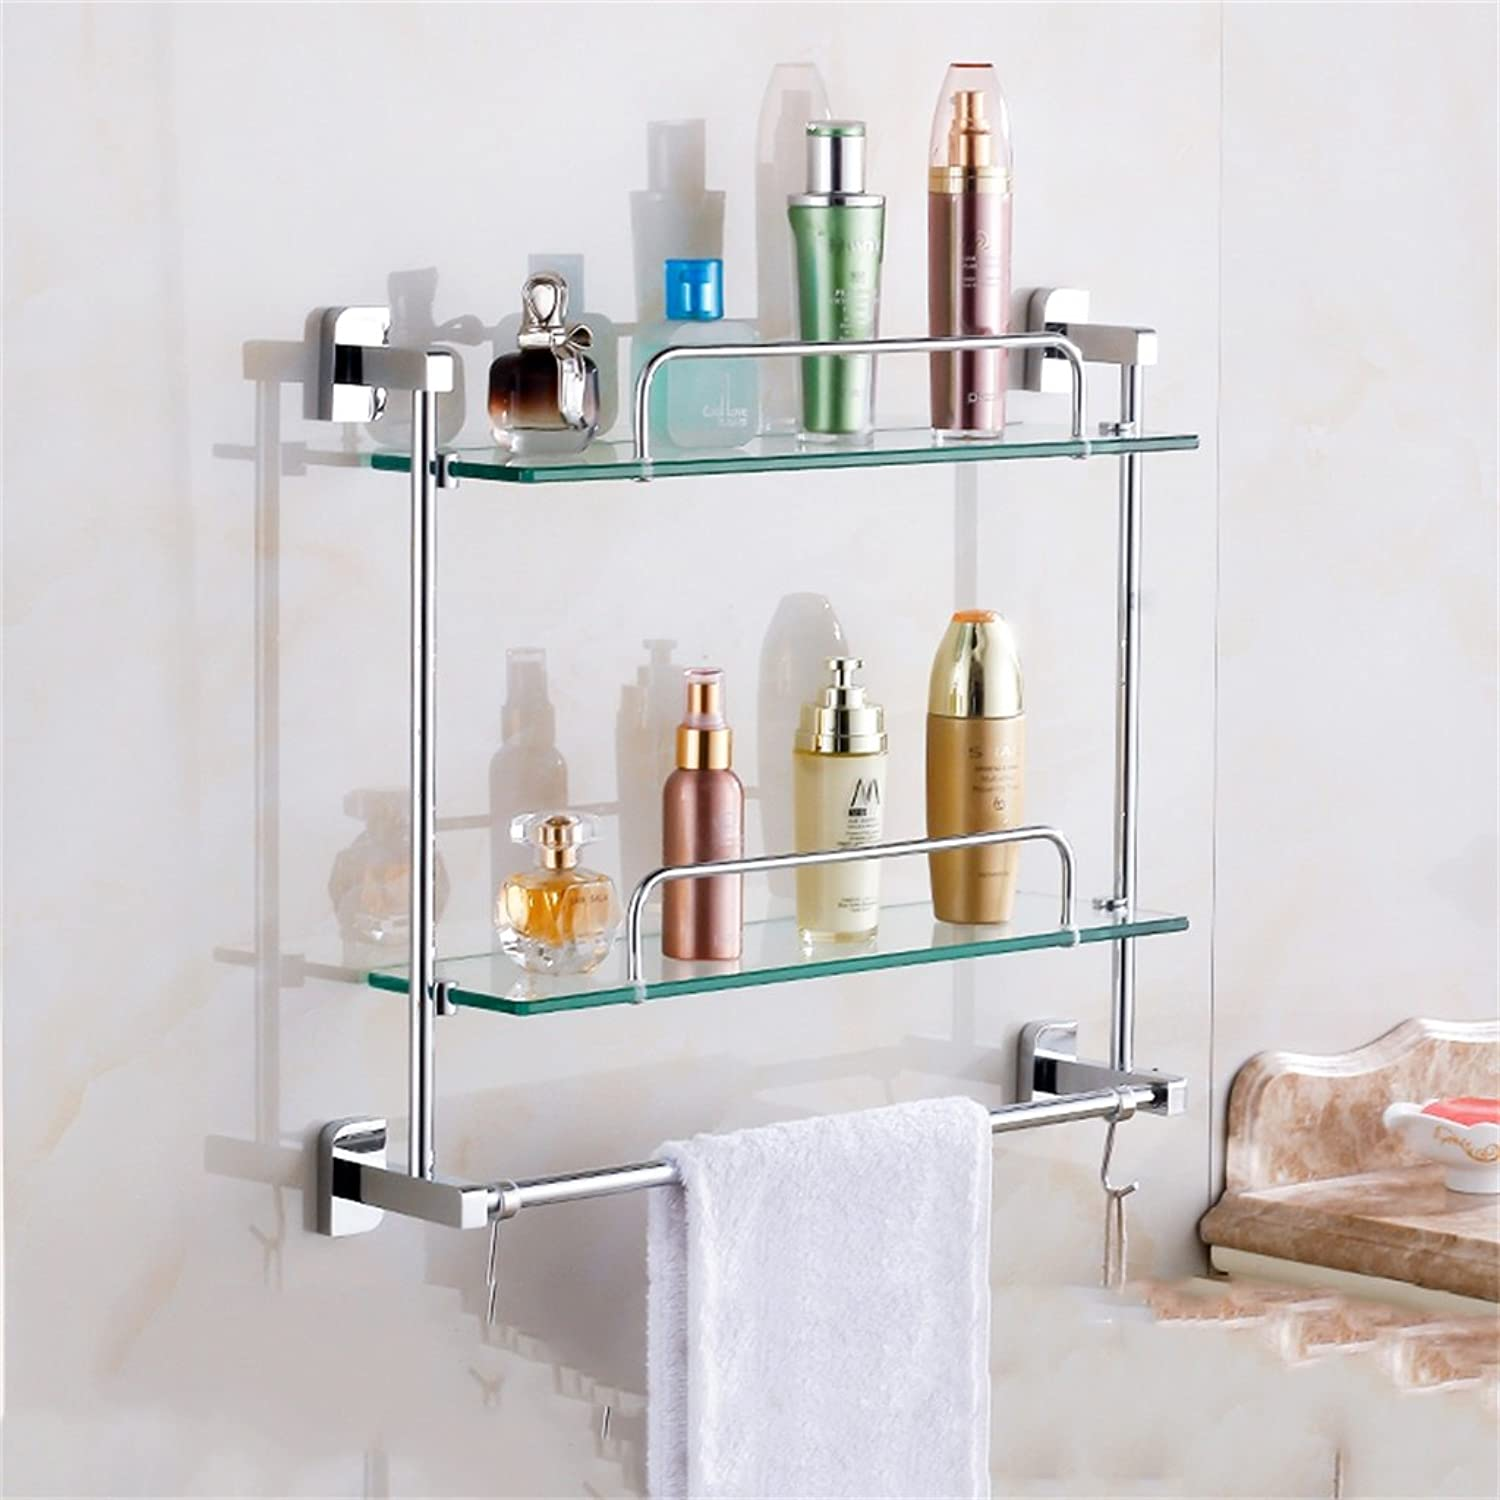 Cpp Shelf Bathroom Shelf Bathroom Shelf Glass Bathroom Wall mountings Safety Rounded Corners (Size   41  44m)